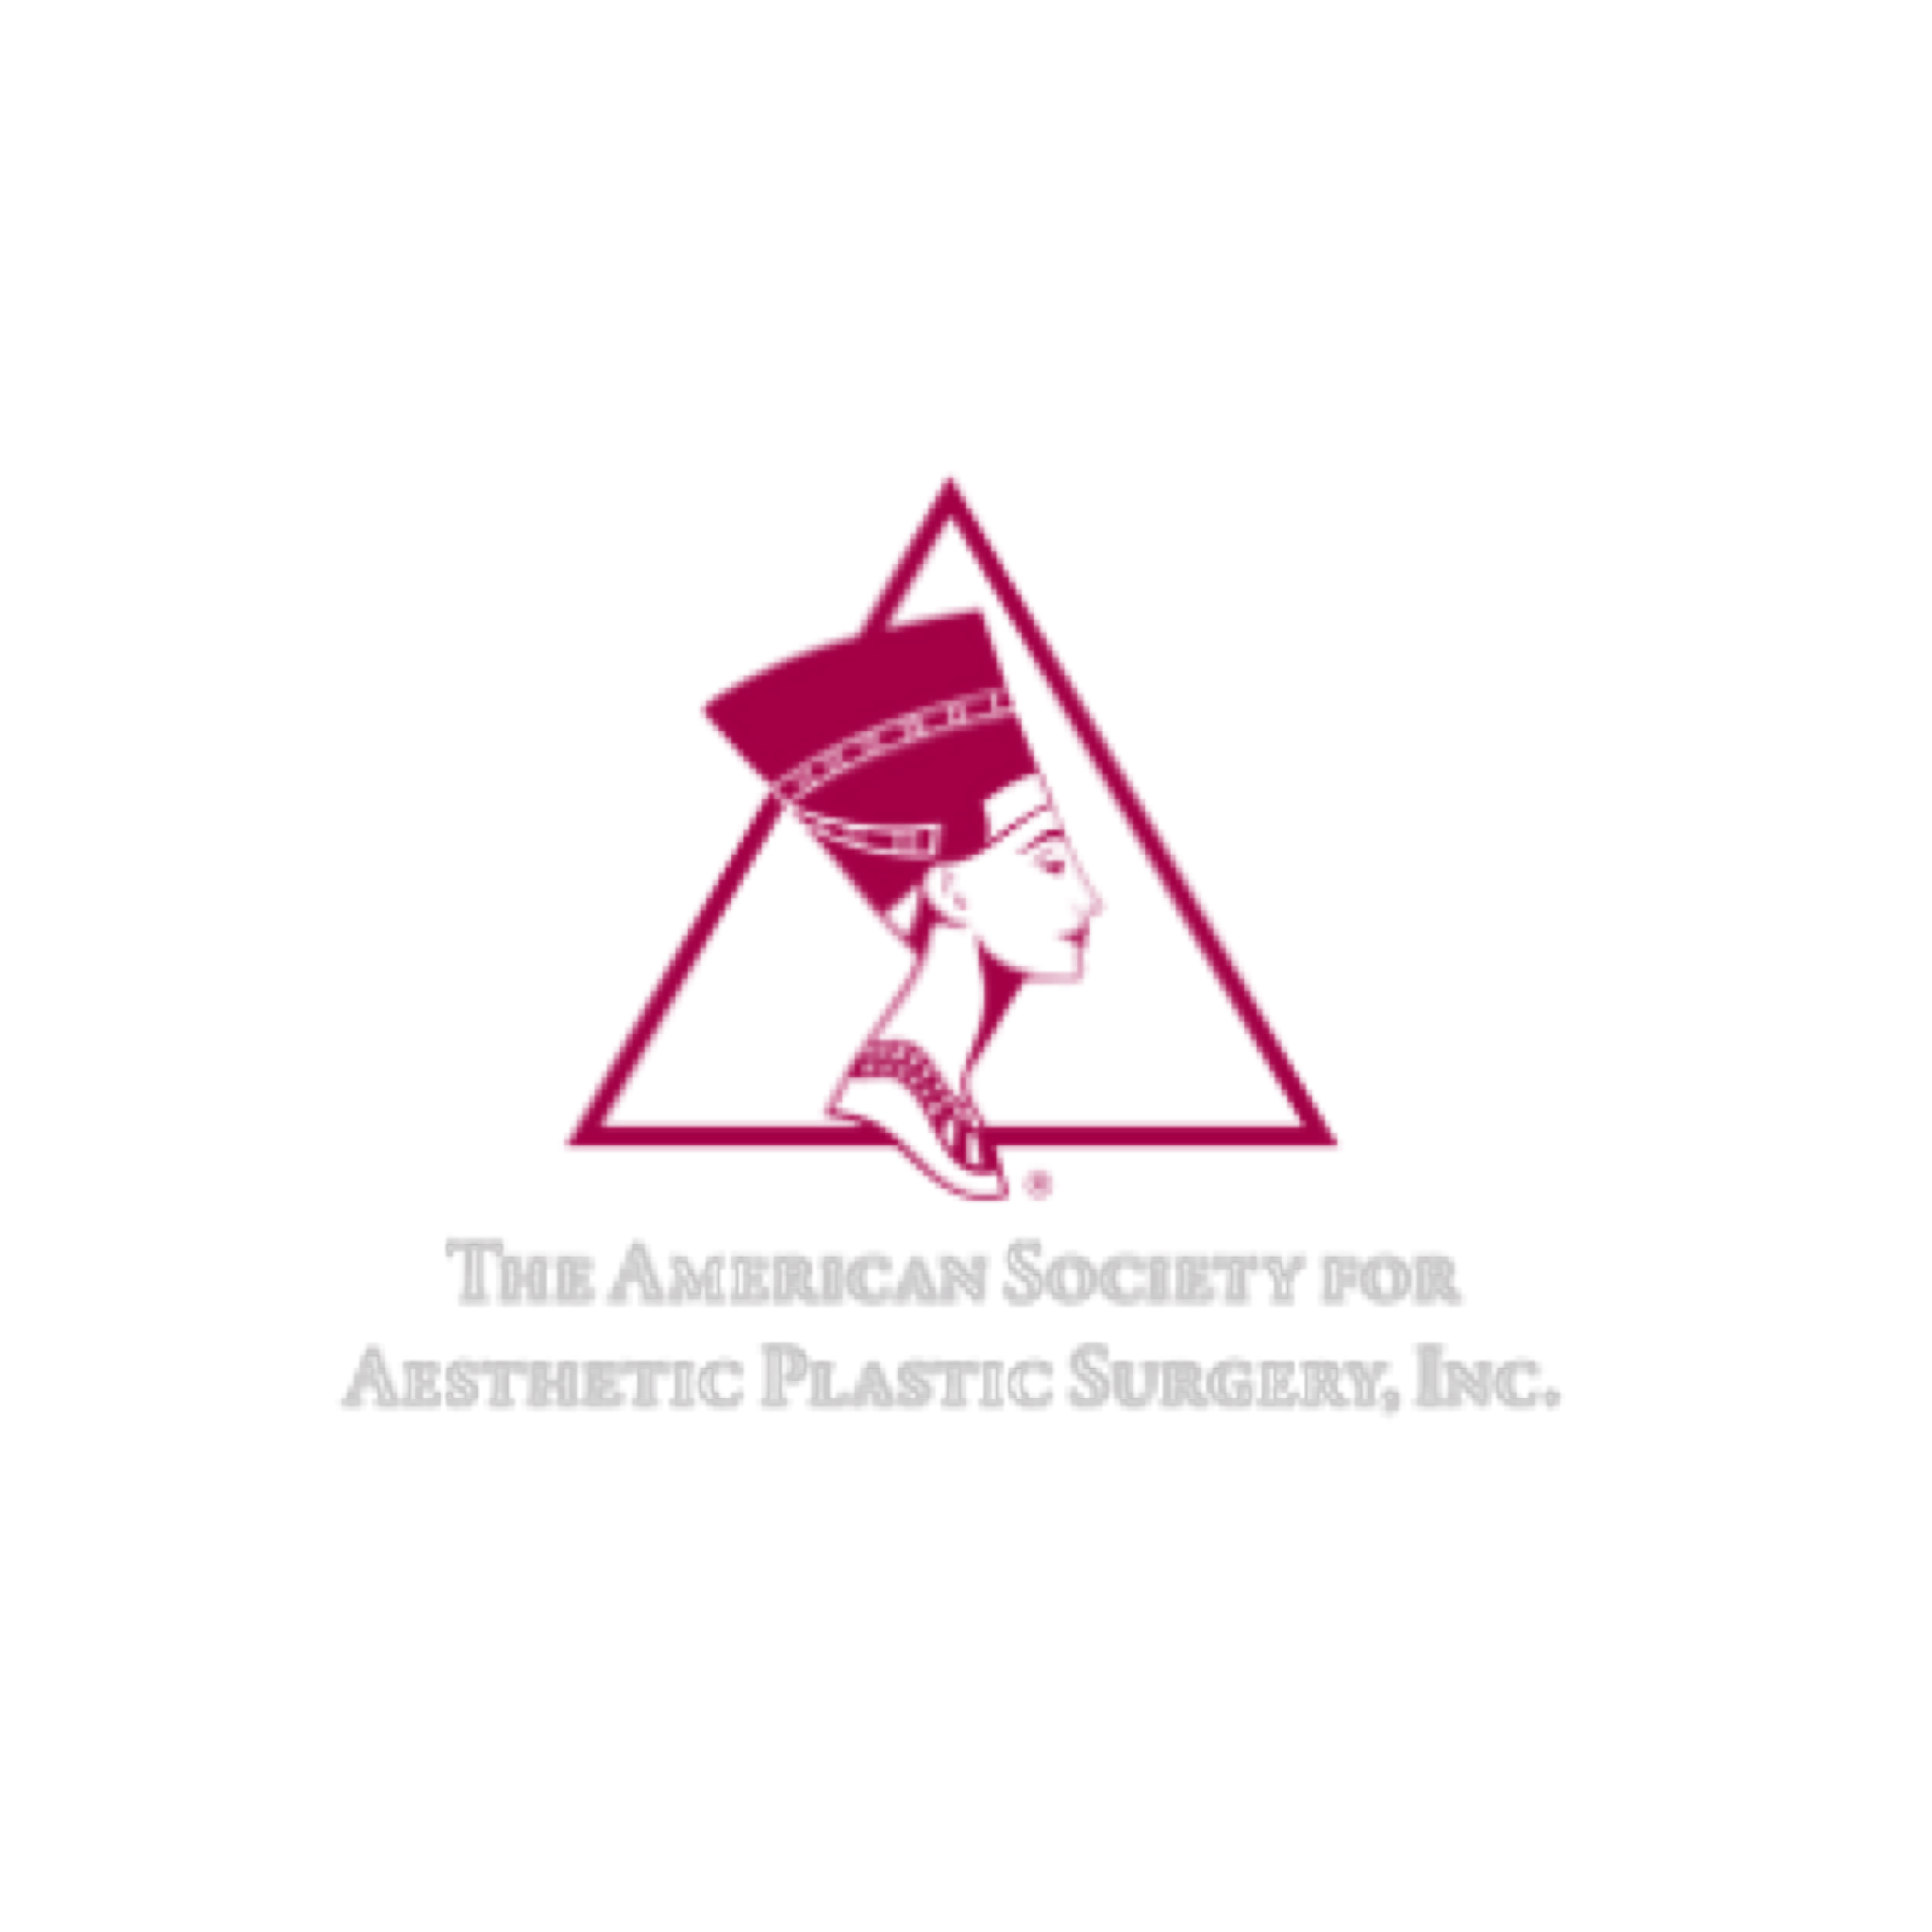 The American Society for Aesthetic Plastic Surgery, Inc. Logo.